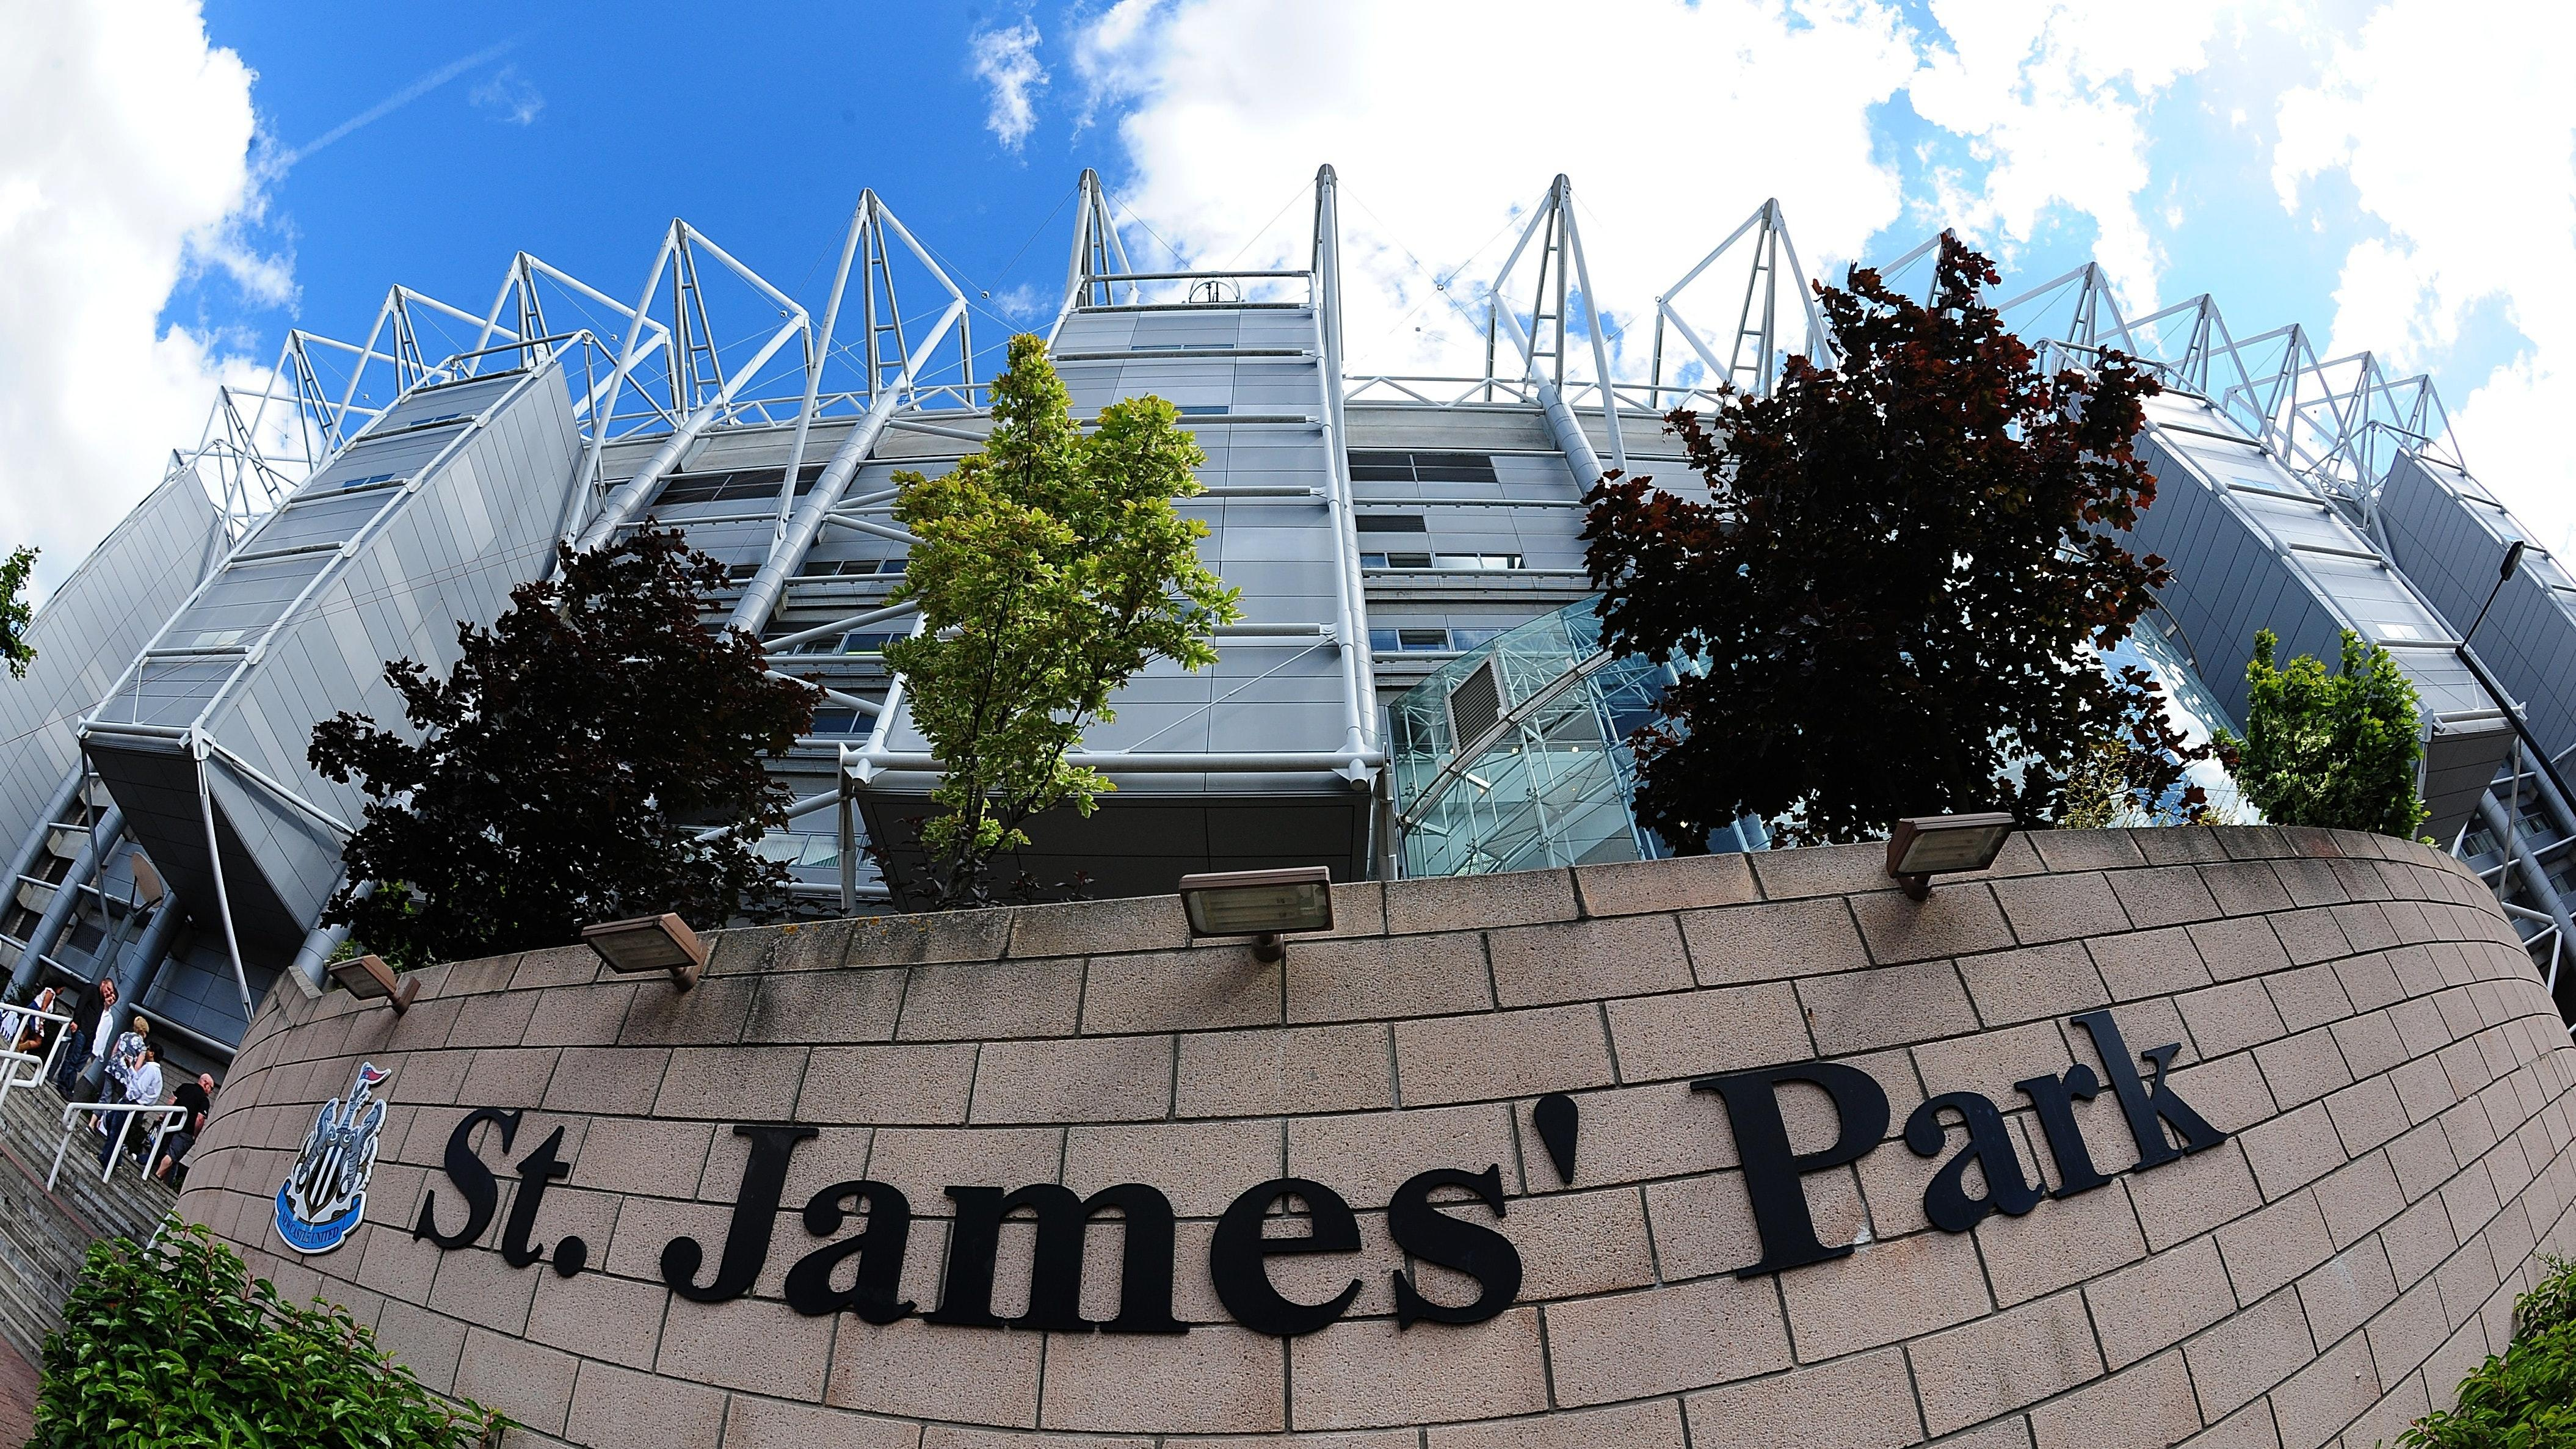 Newcastle fans group asks Premier League to make statement on failed takeover